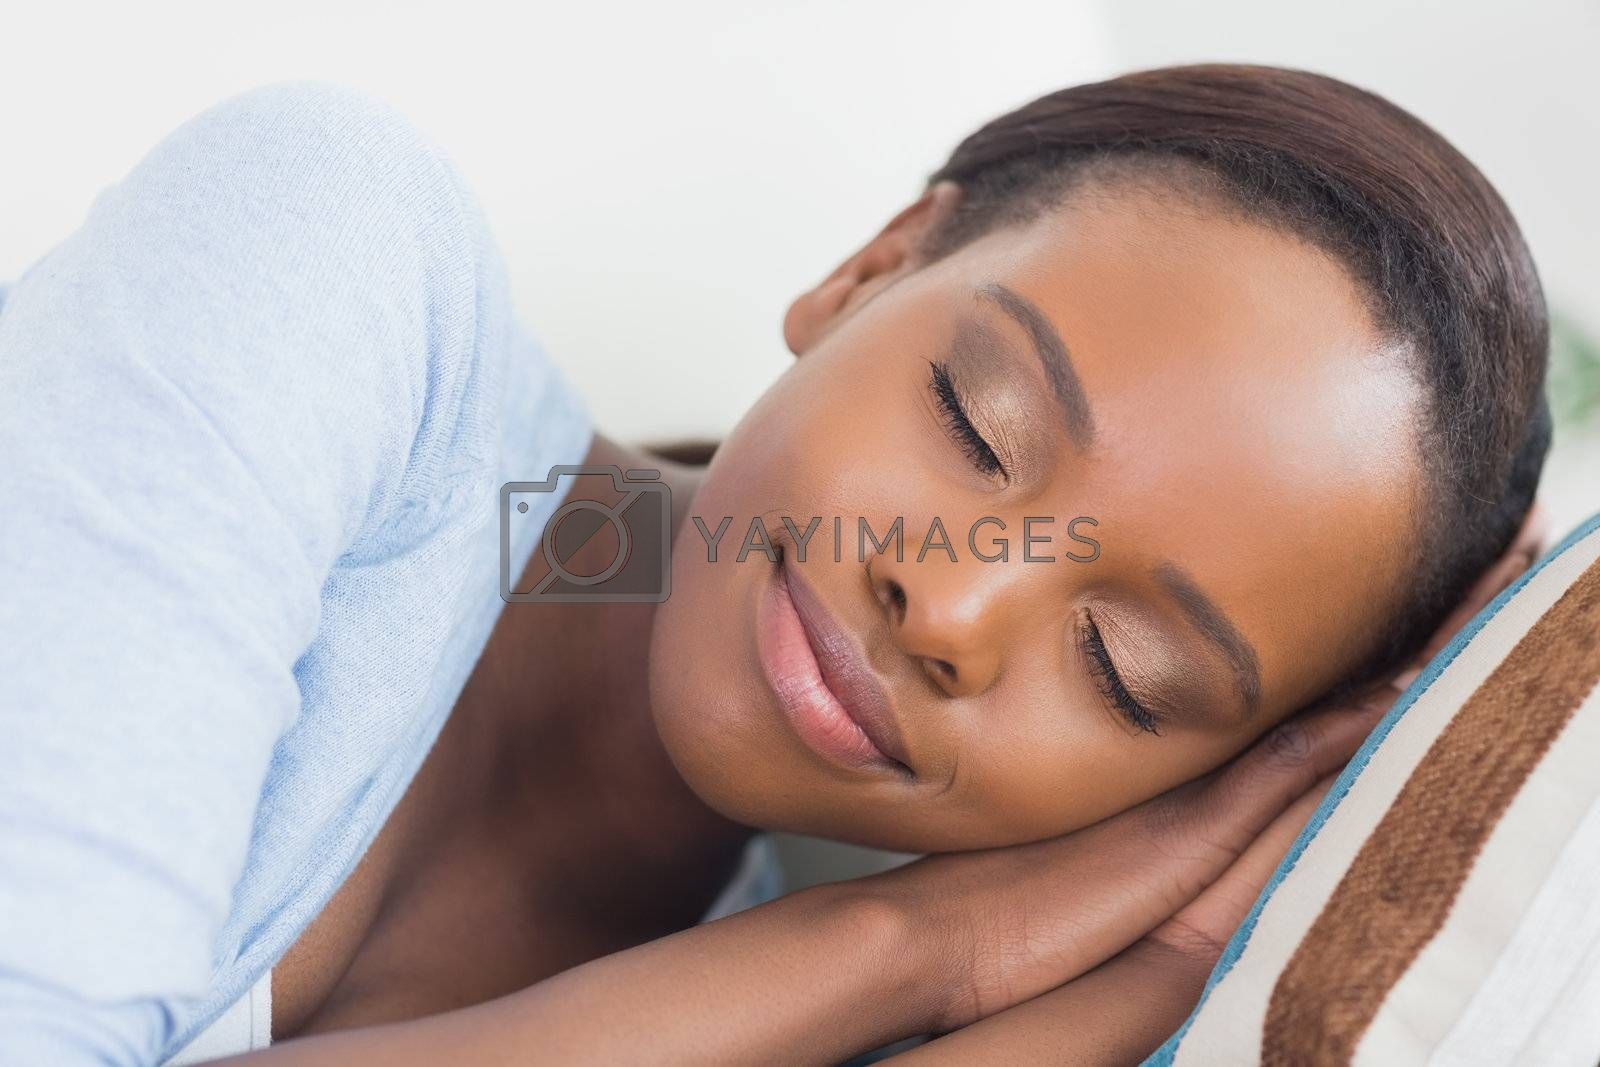 Black woman with closed eyes in a living room